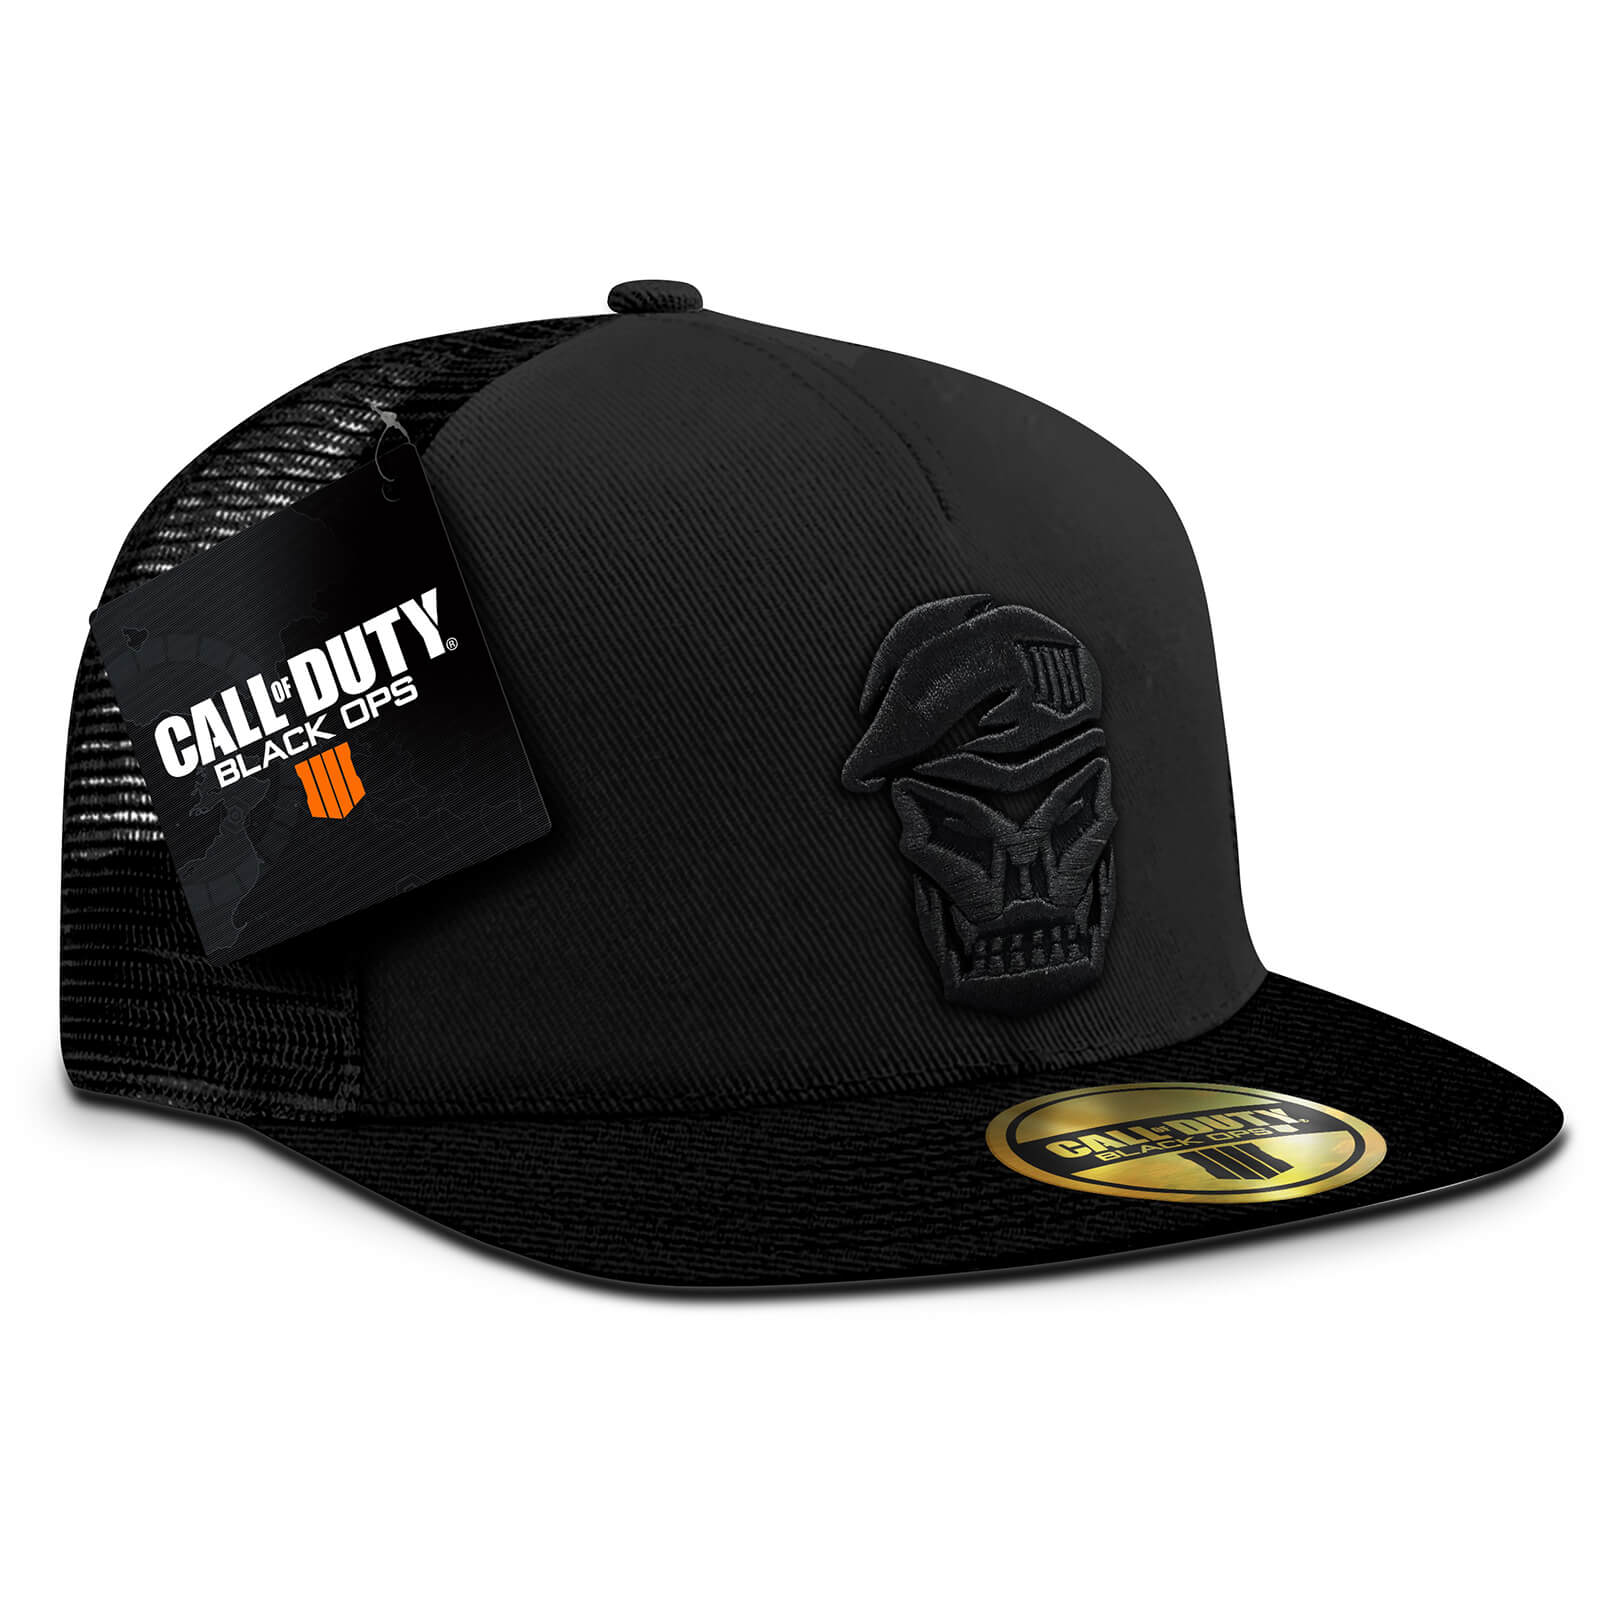 85e48ffd3 Call of Duty Black Ops IV Snapback - Style 1